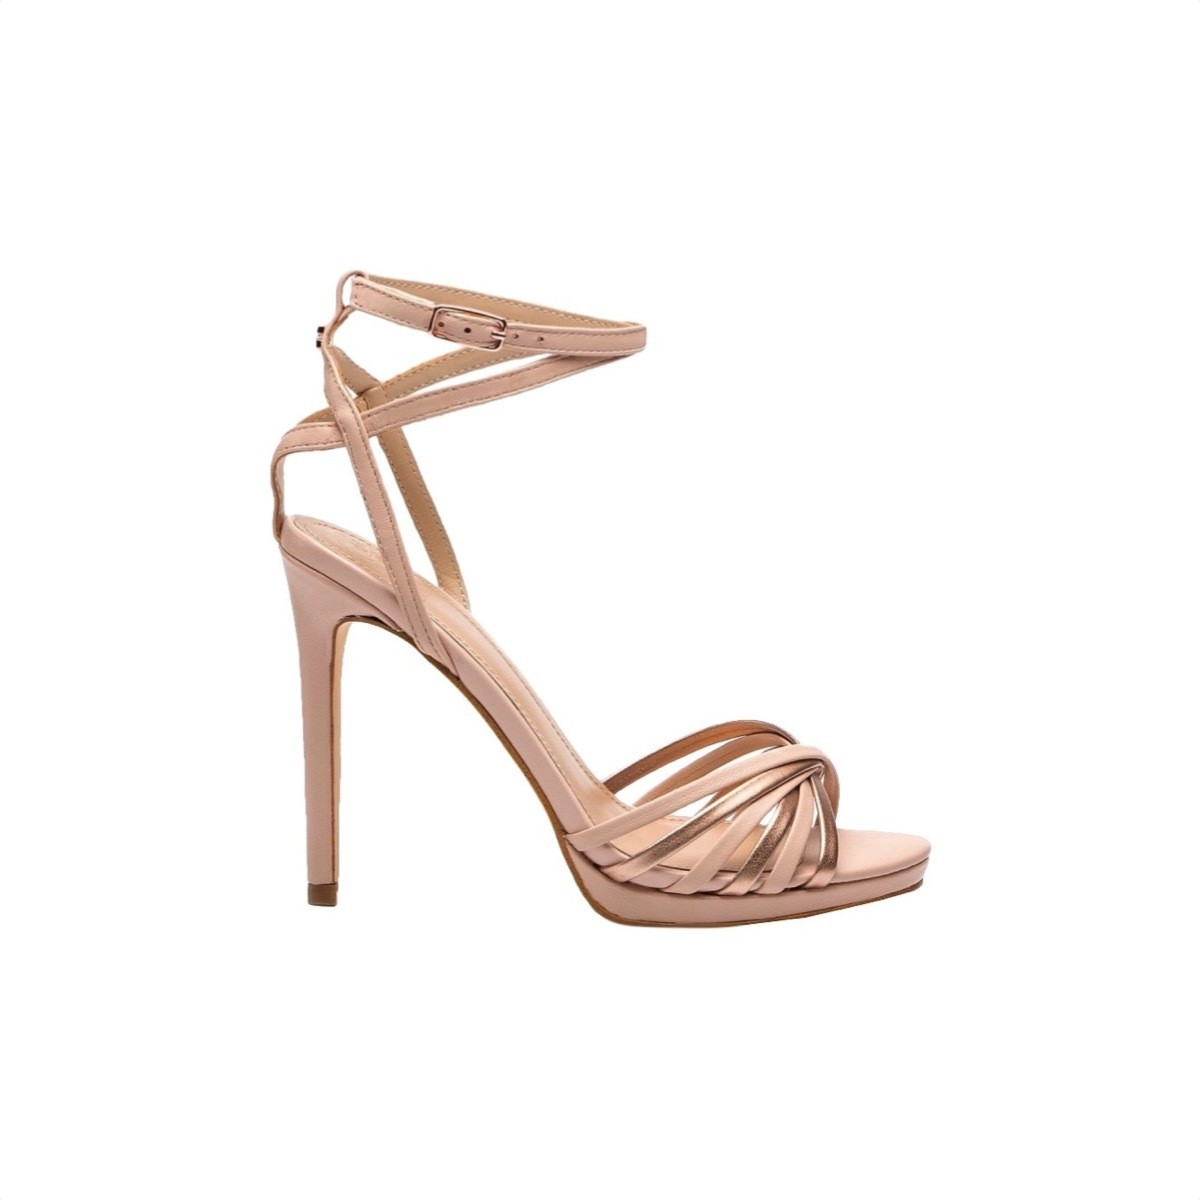 GUESS - Tonya Sandalo - Blush